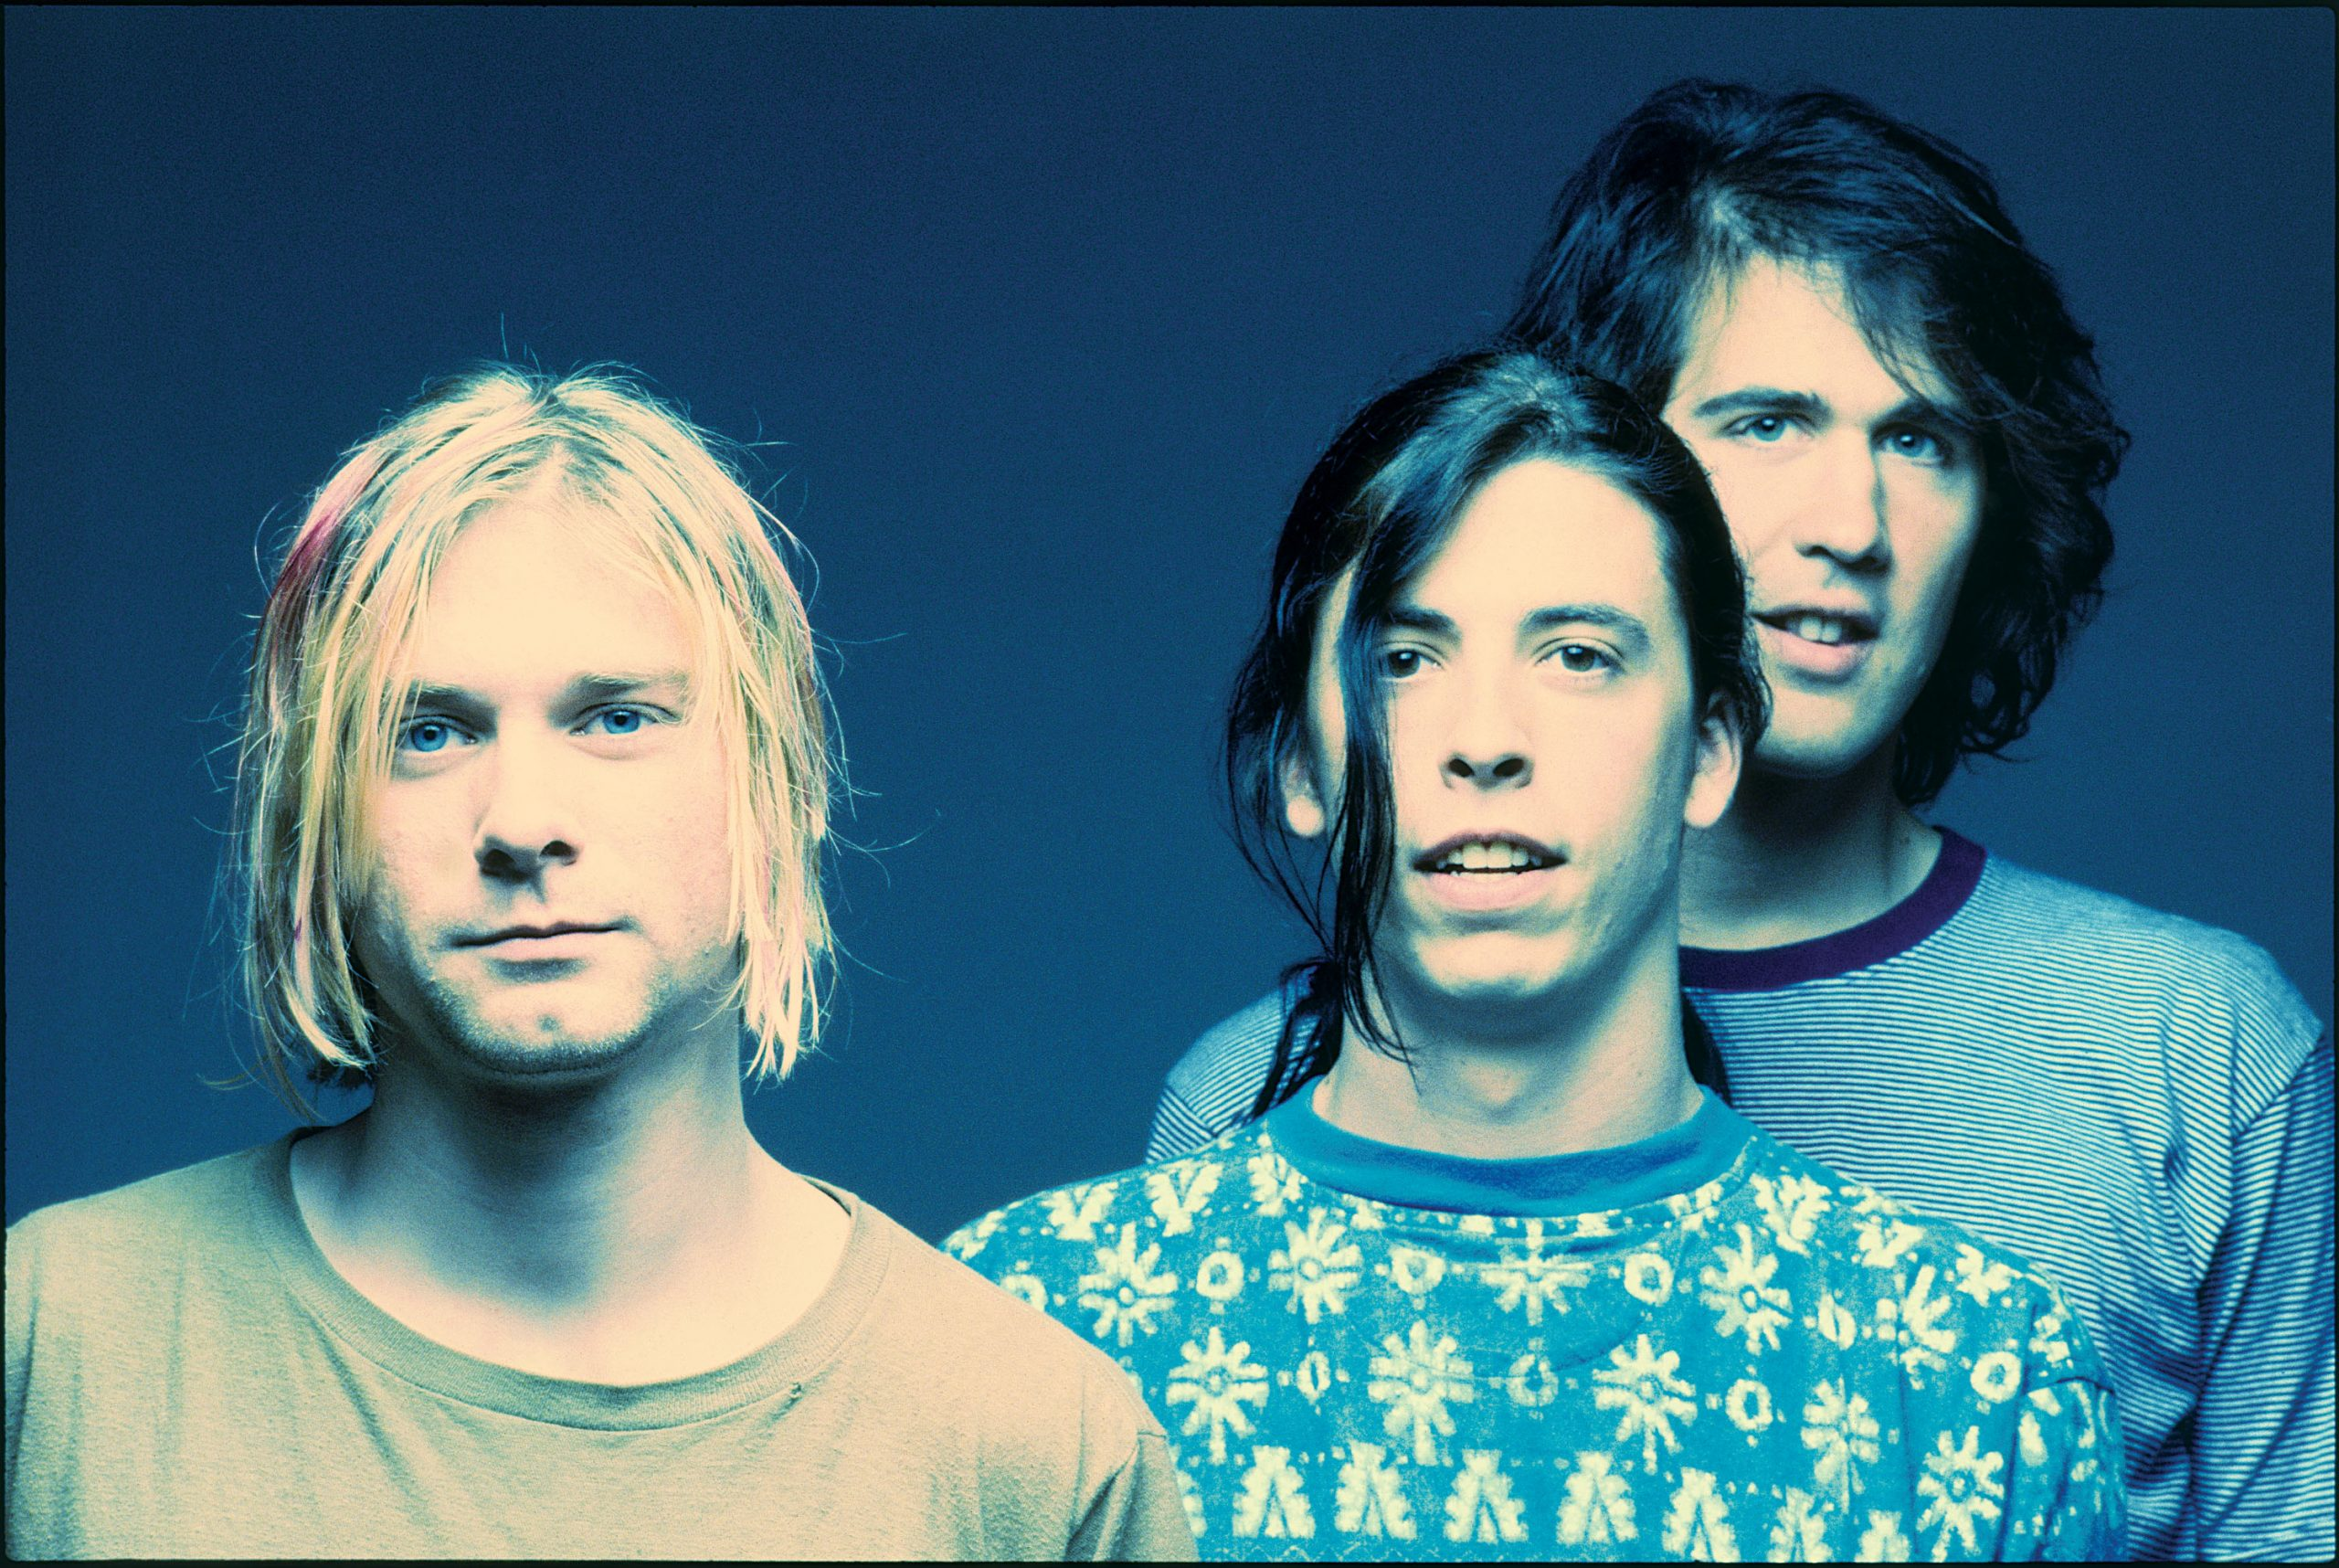 """A Composer Breaks Down The Music Theory Behind Nirvana's """"In Bloom"""""""